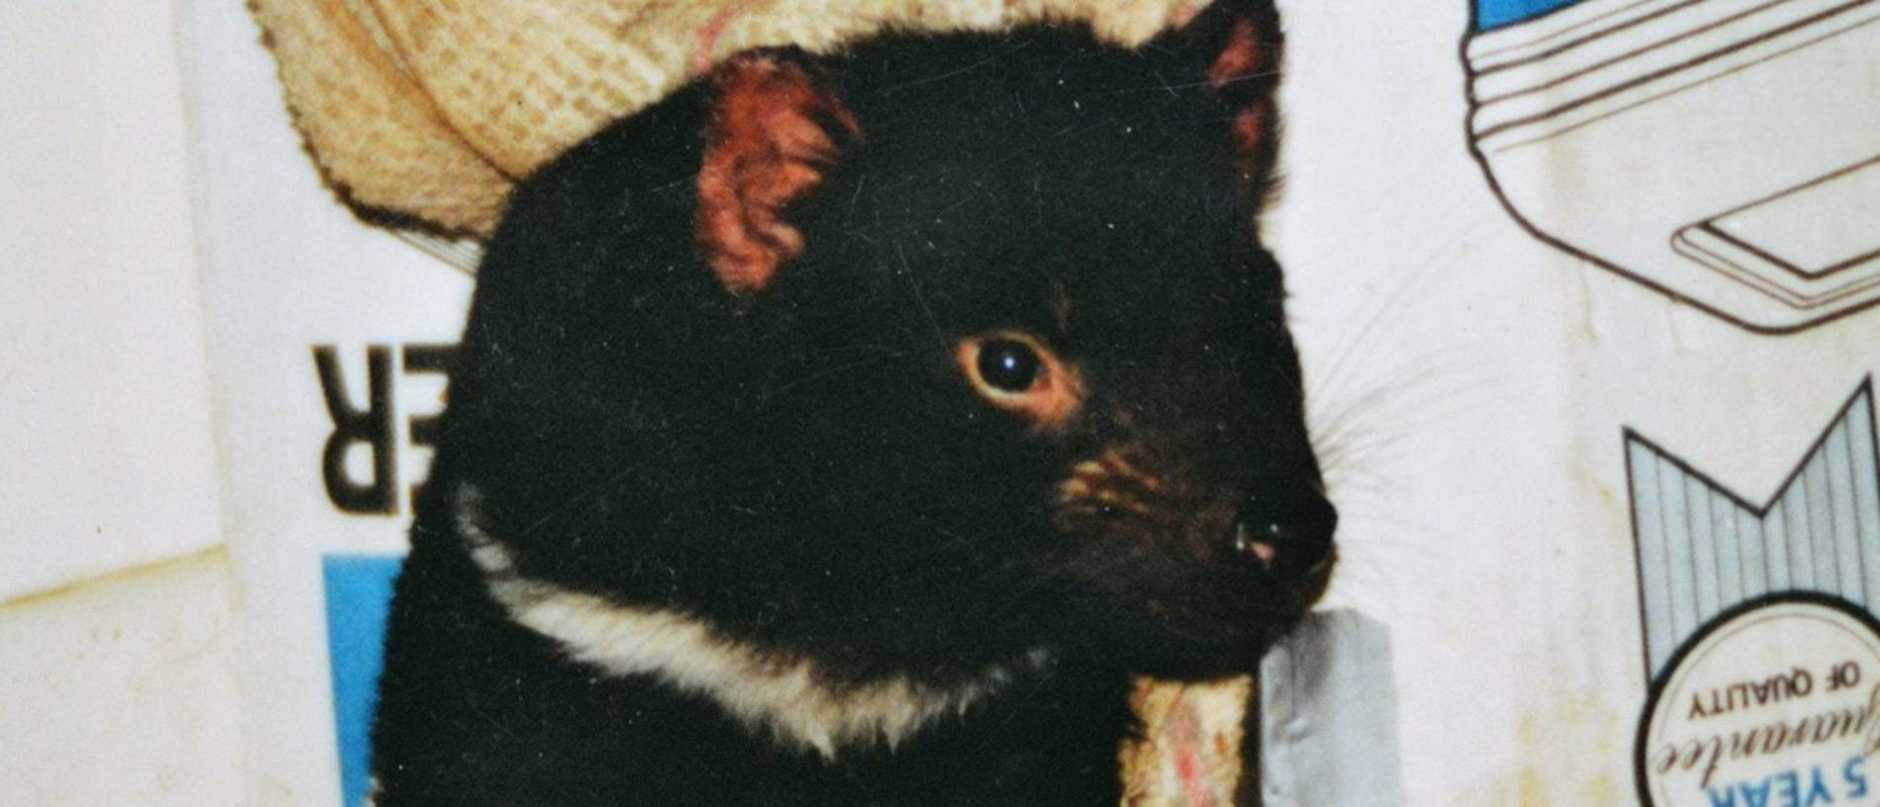 Mandy Kidd was surprised to find a quoll and Tasmanian devil had been breaking in. Now she has nothing but fond memories for her housemates.